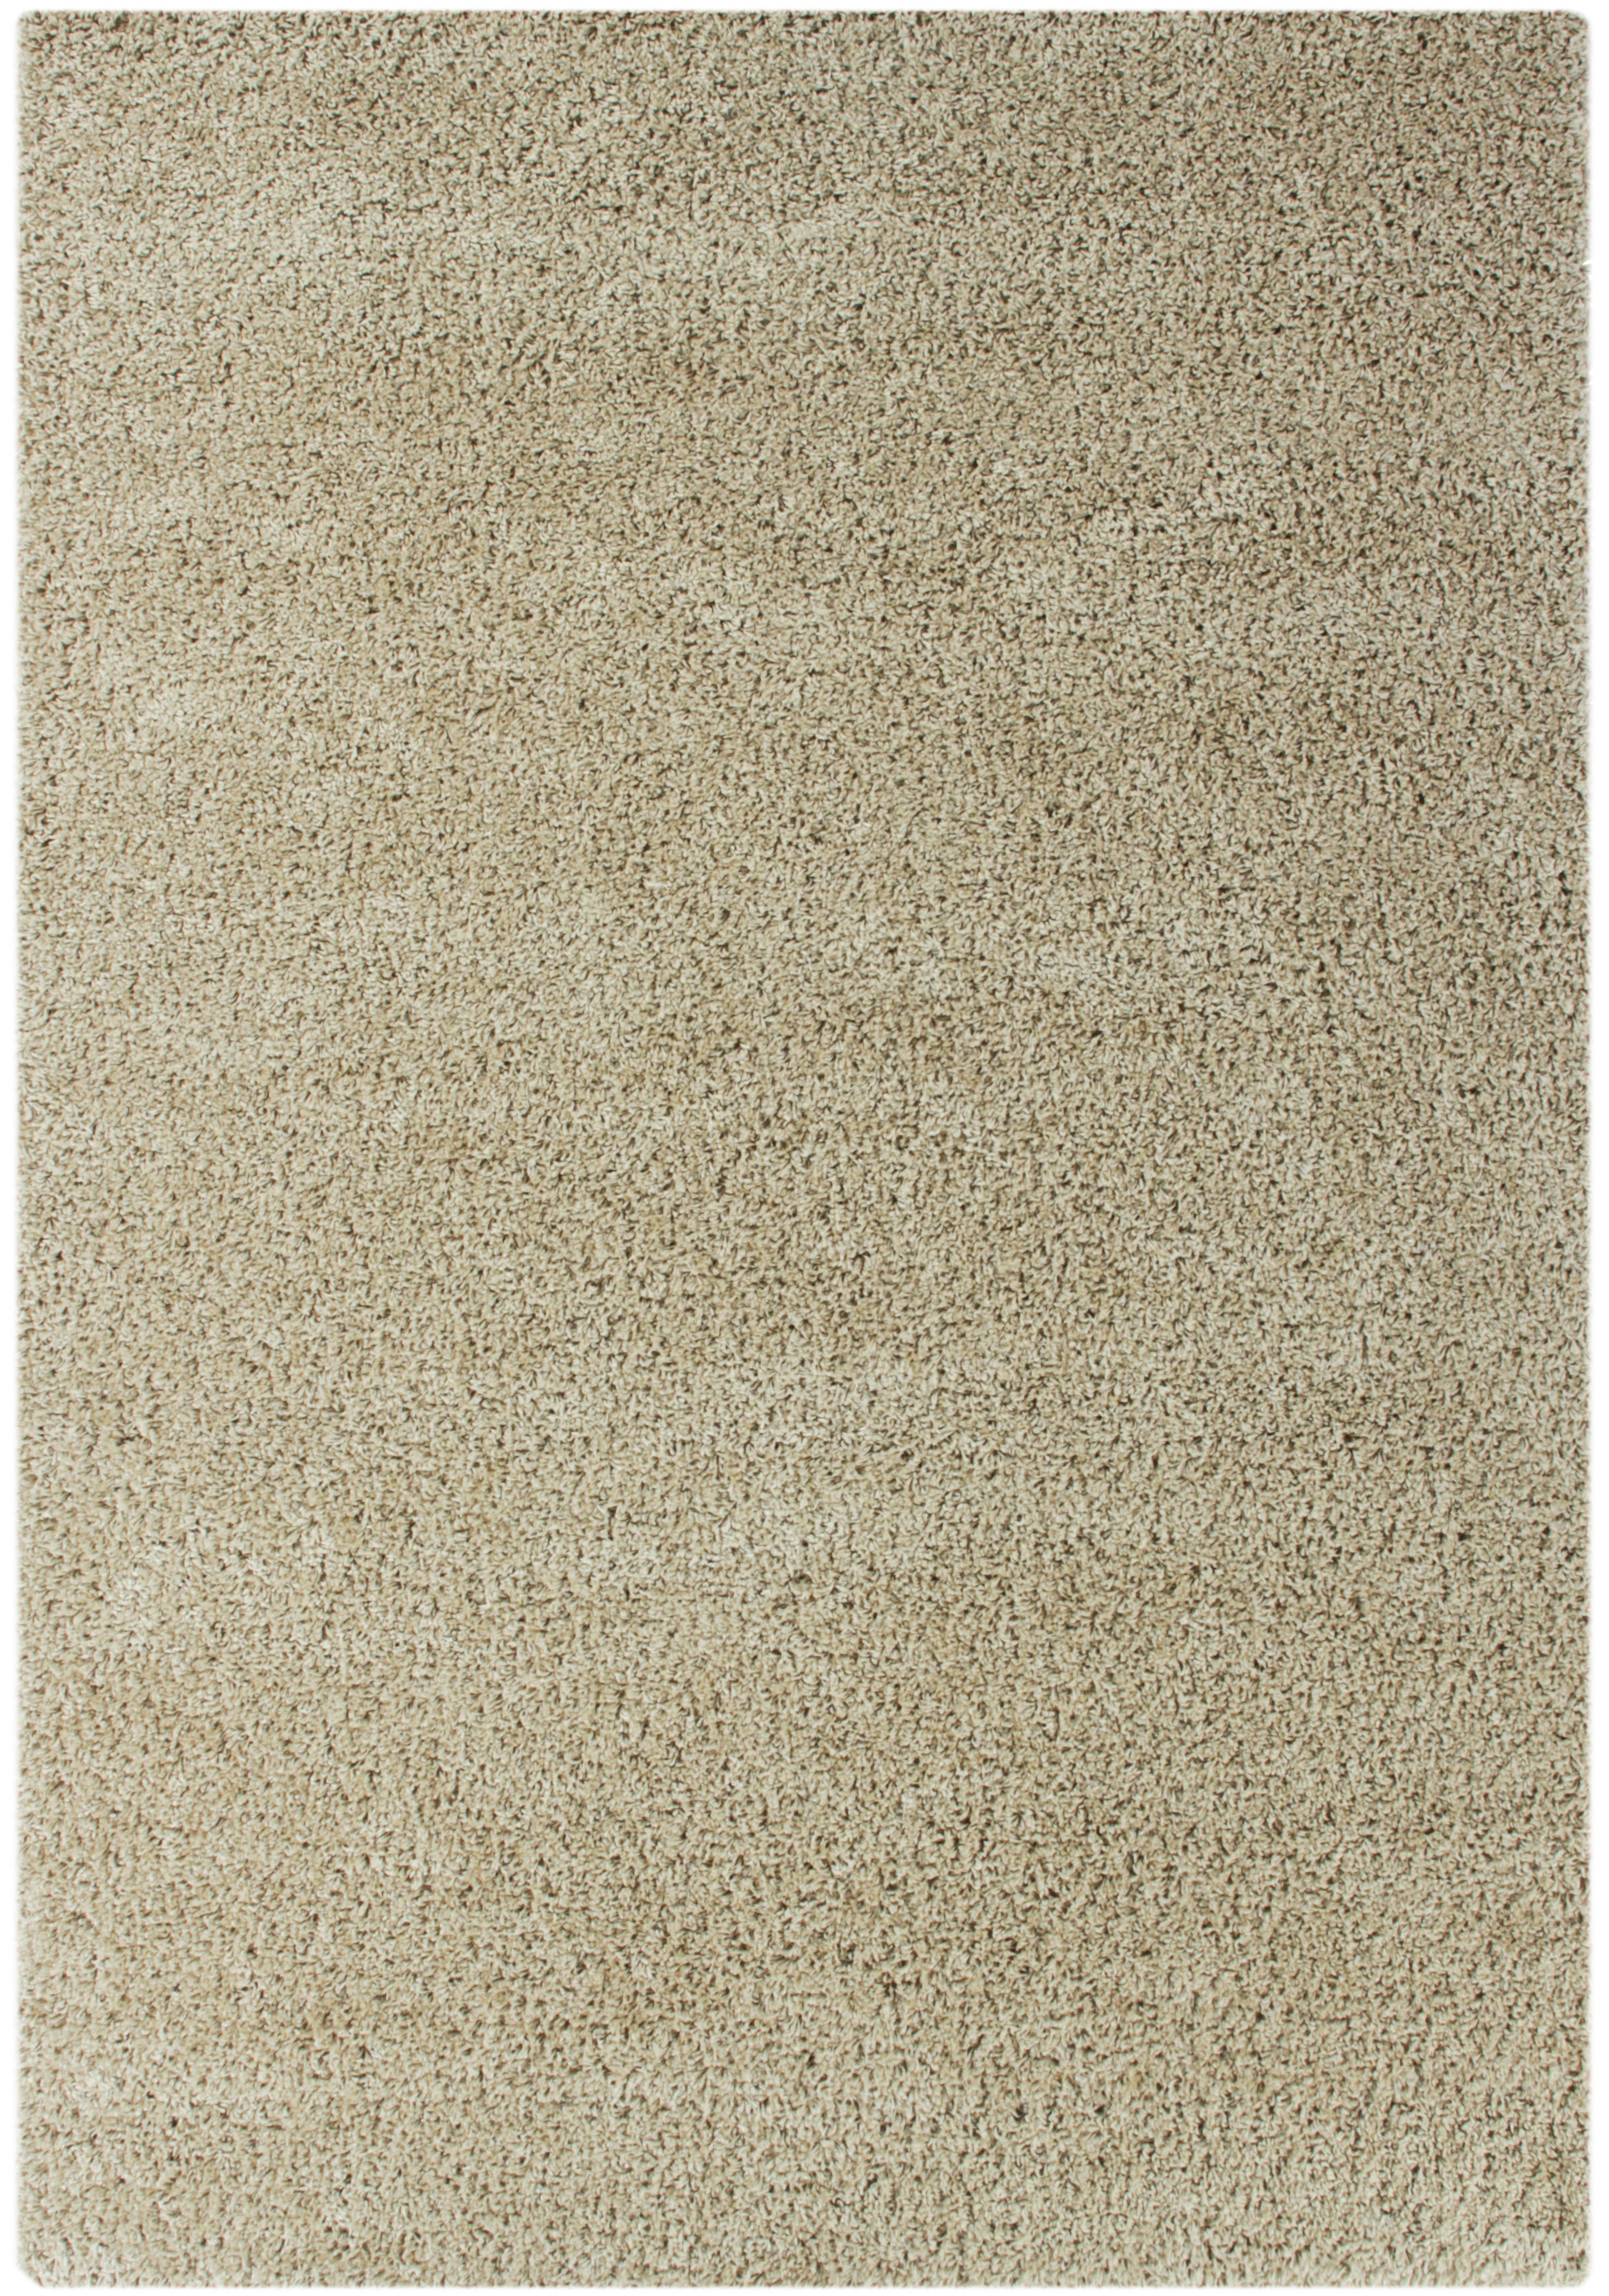 tapis shaggy beige moderne tapis design uni en polypropyl ne vasco. Black Bedroom Furniture Sets. Home Design Ideas